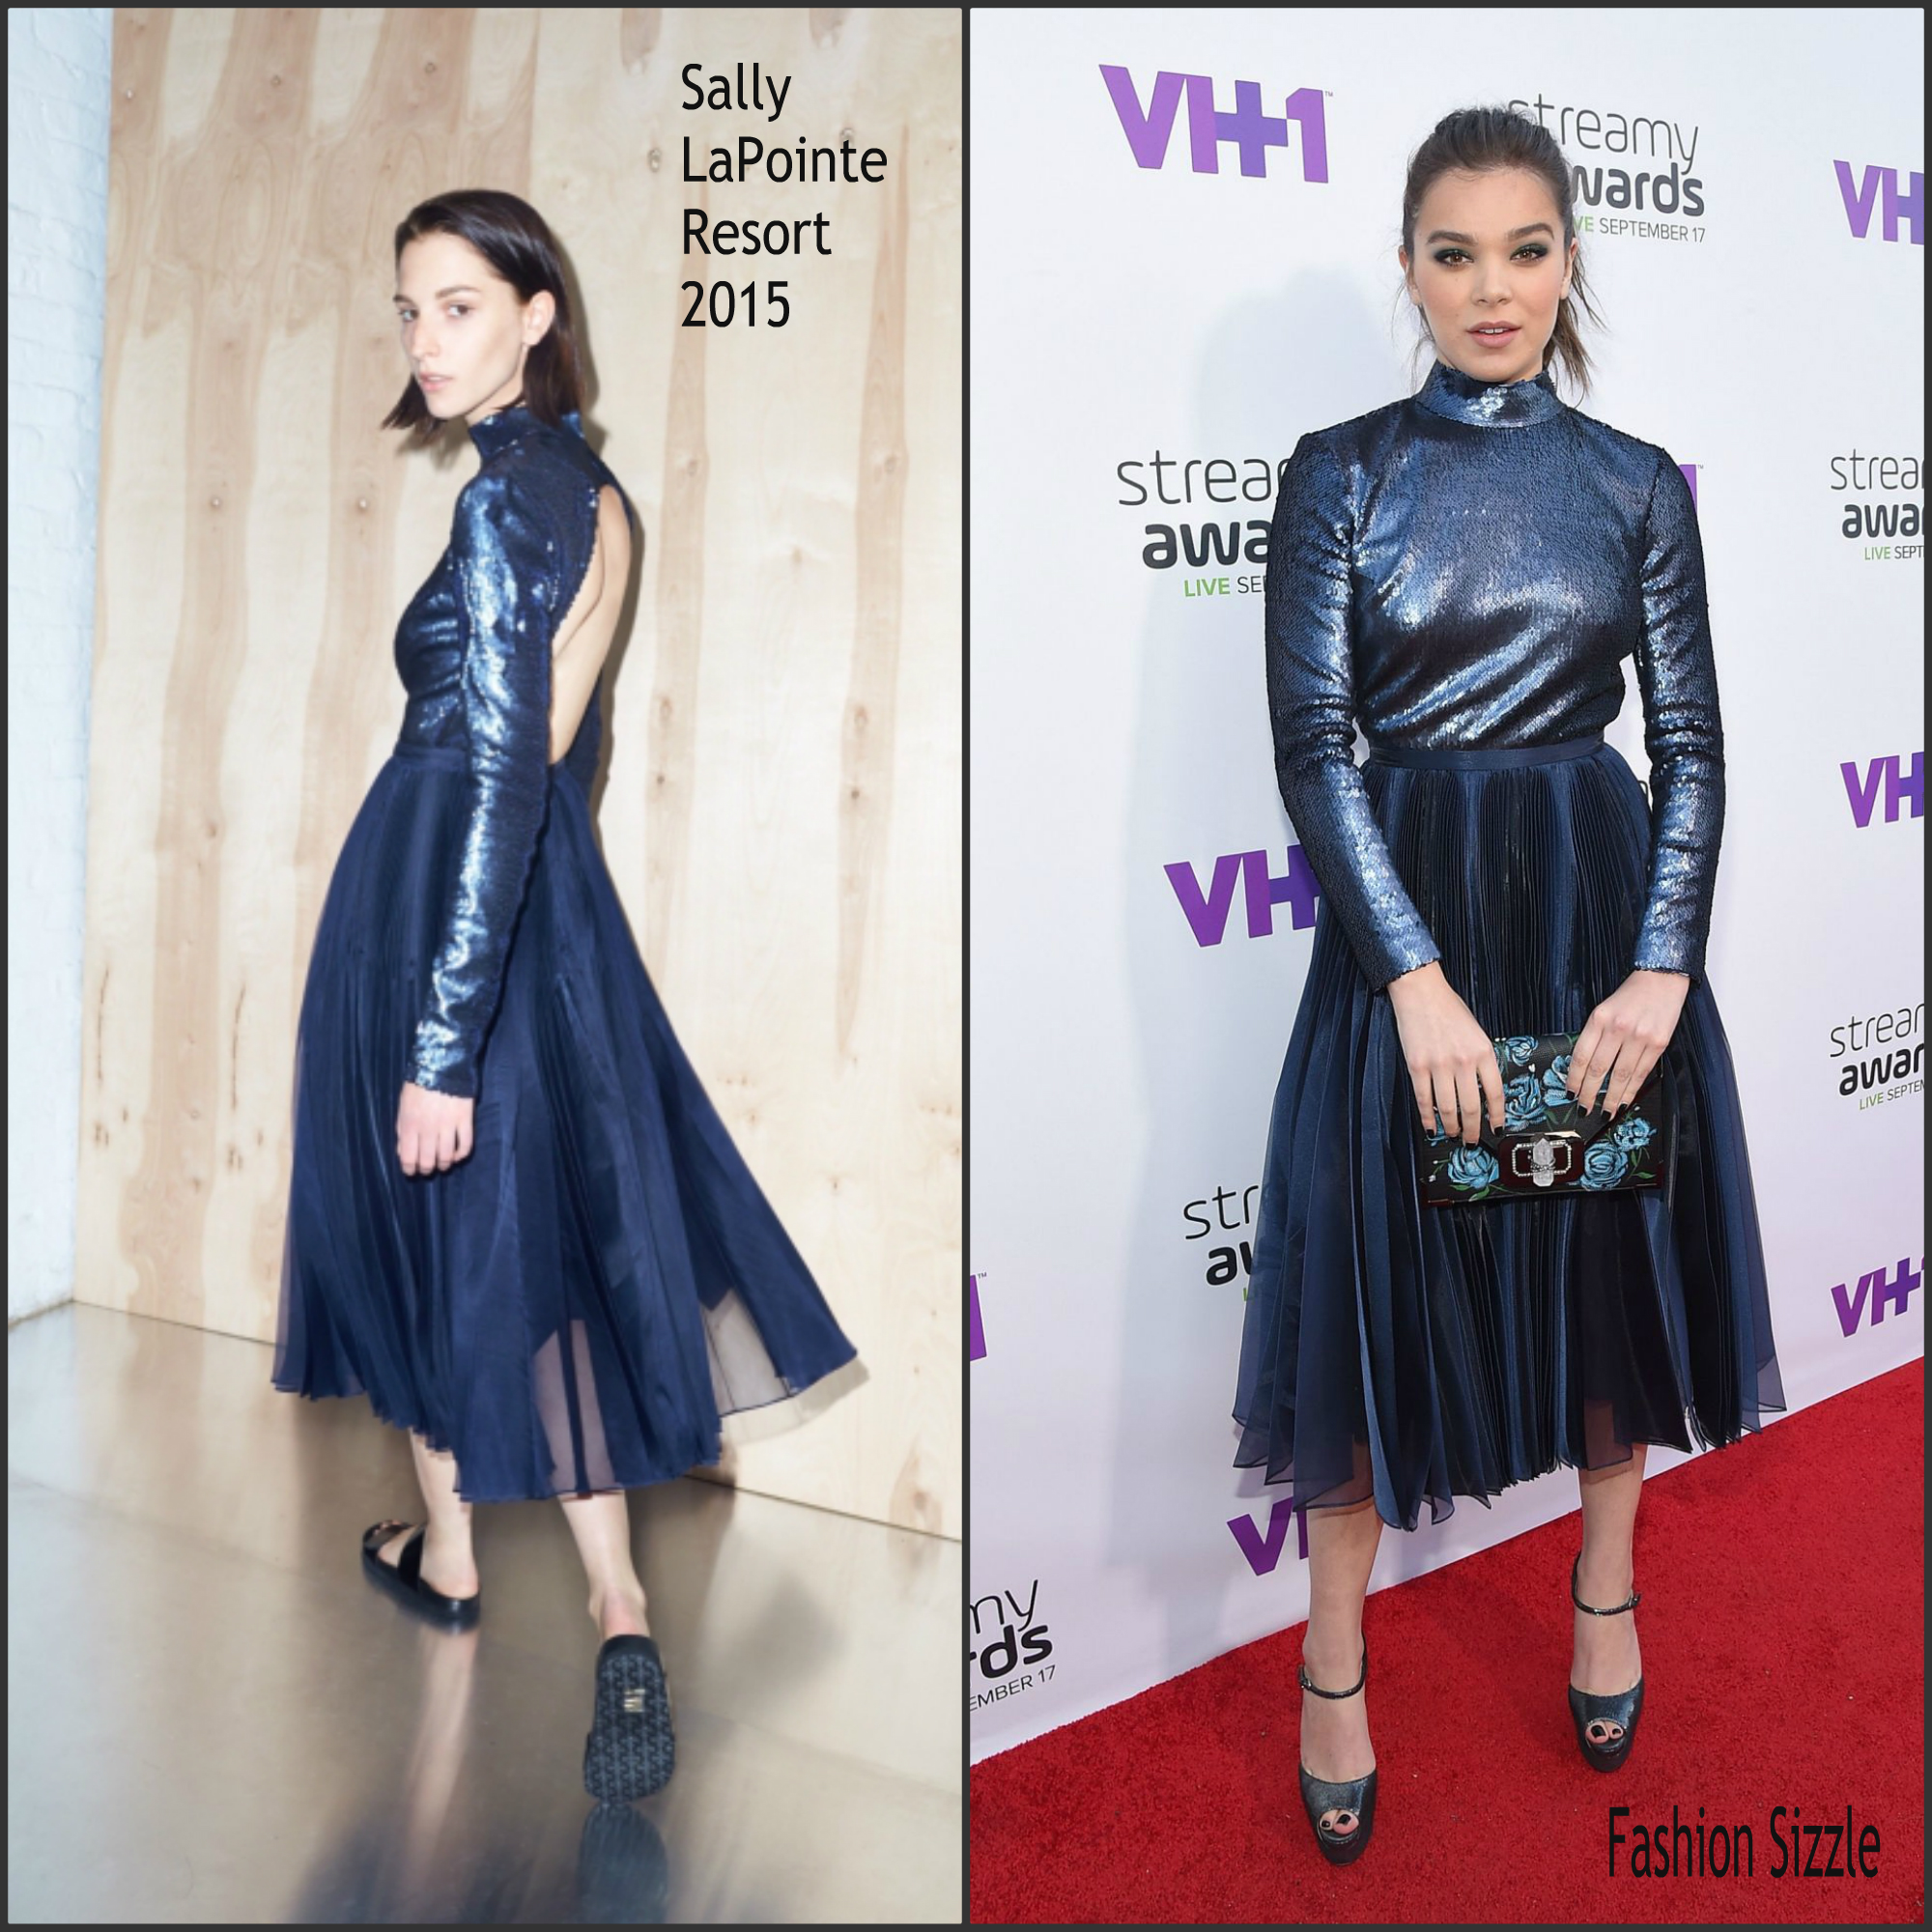 haille-steinfeld-in-sally-lapointe-2015-streamy-awards-in-los-angeles